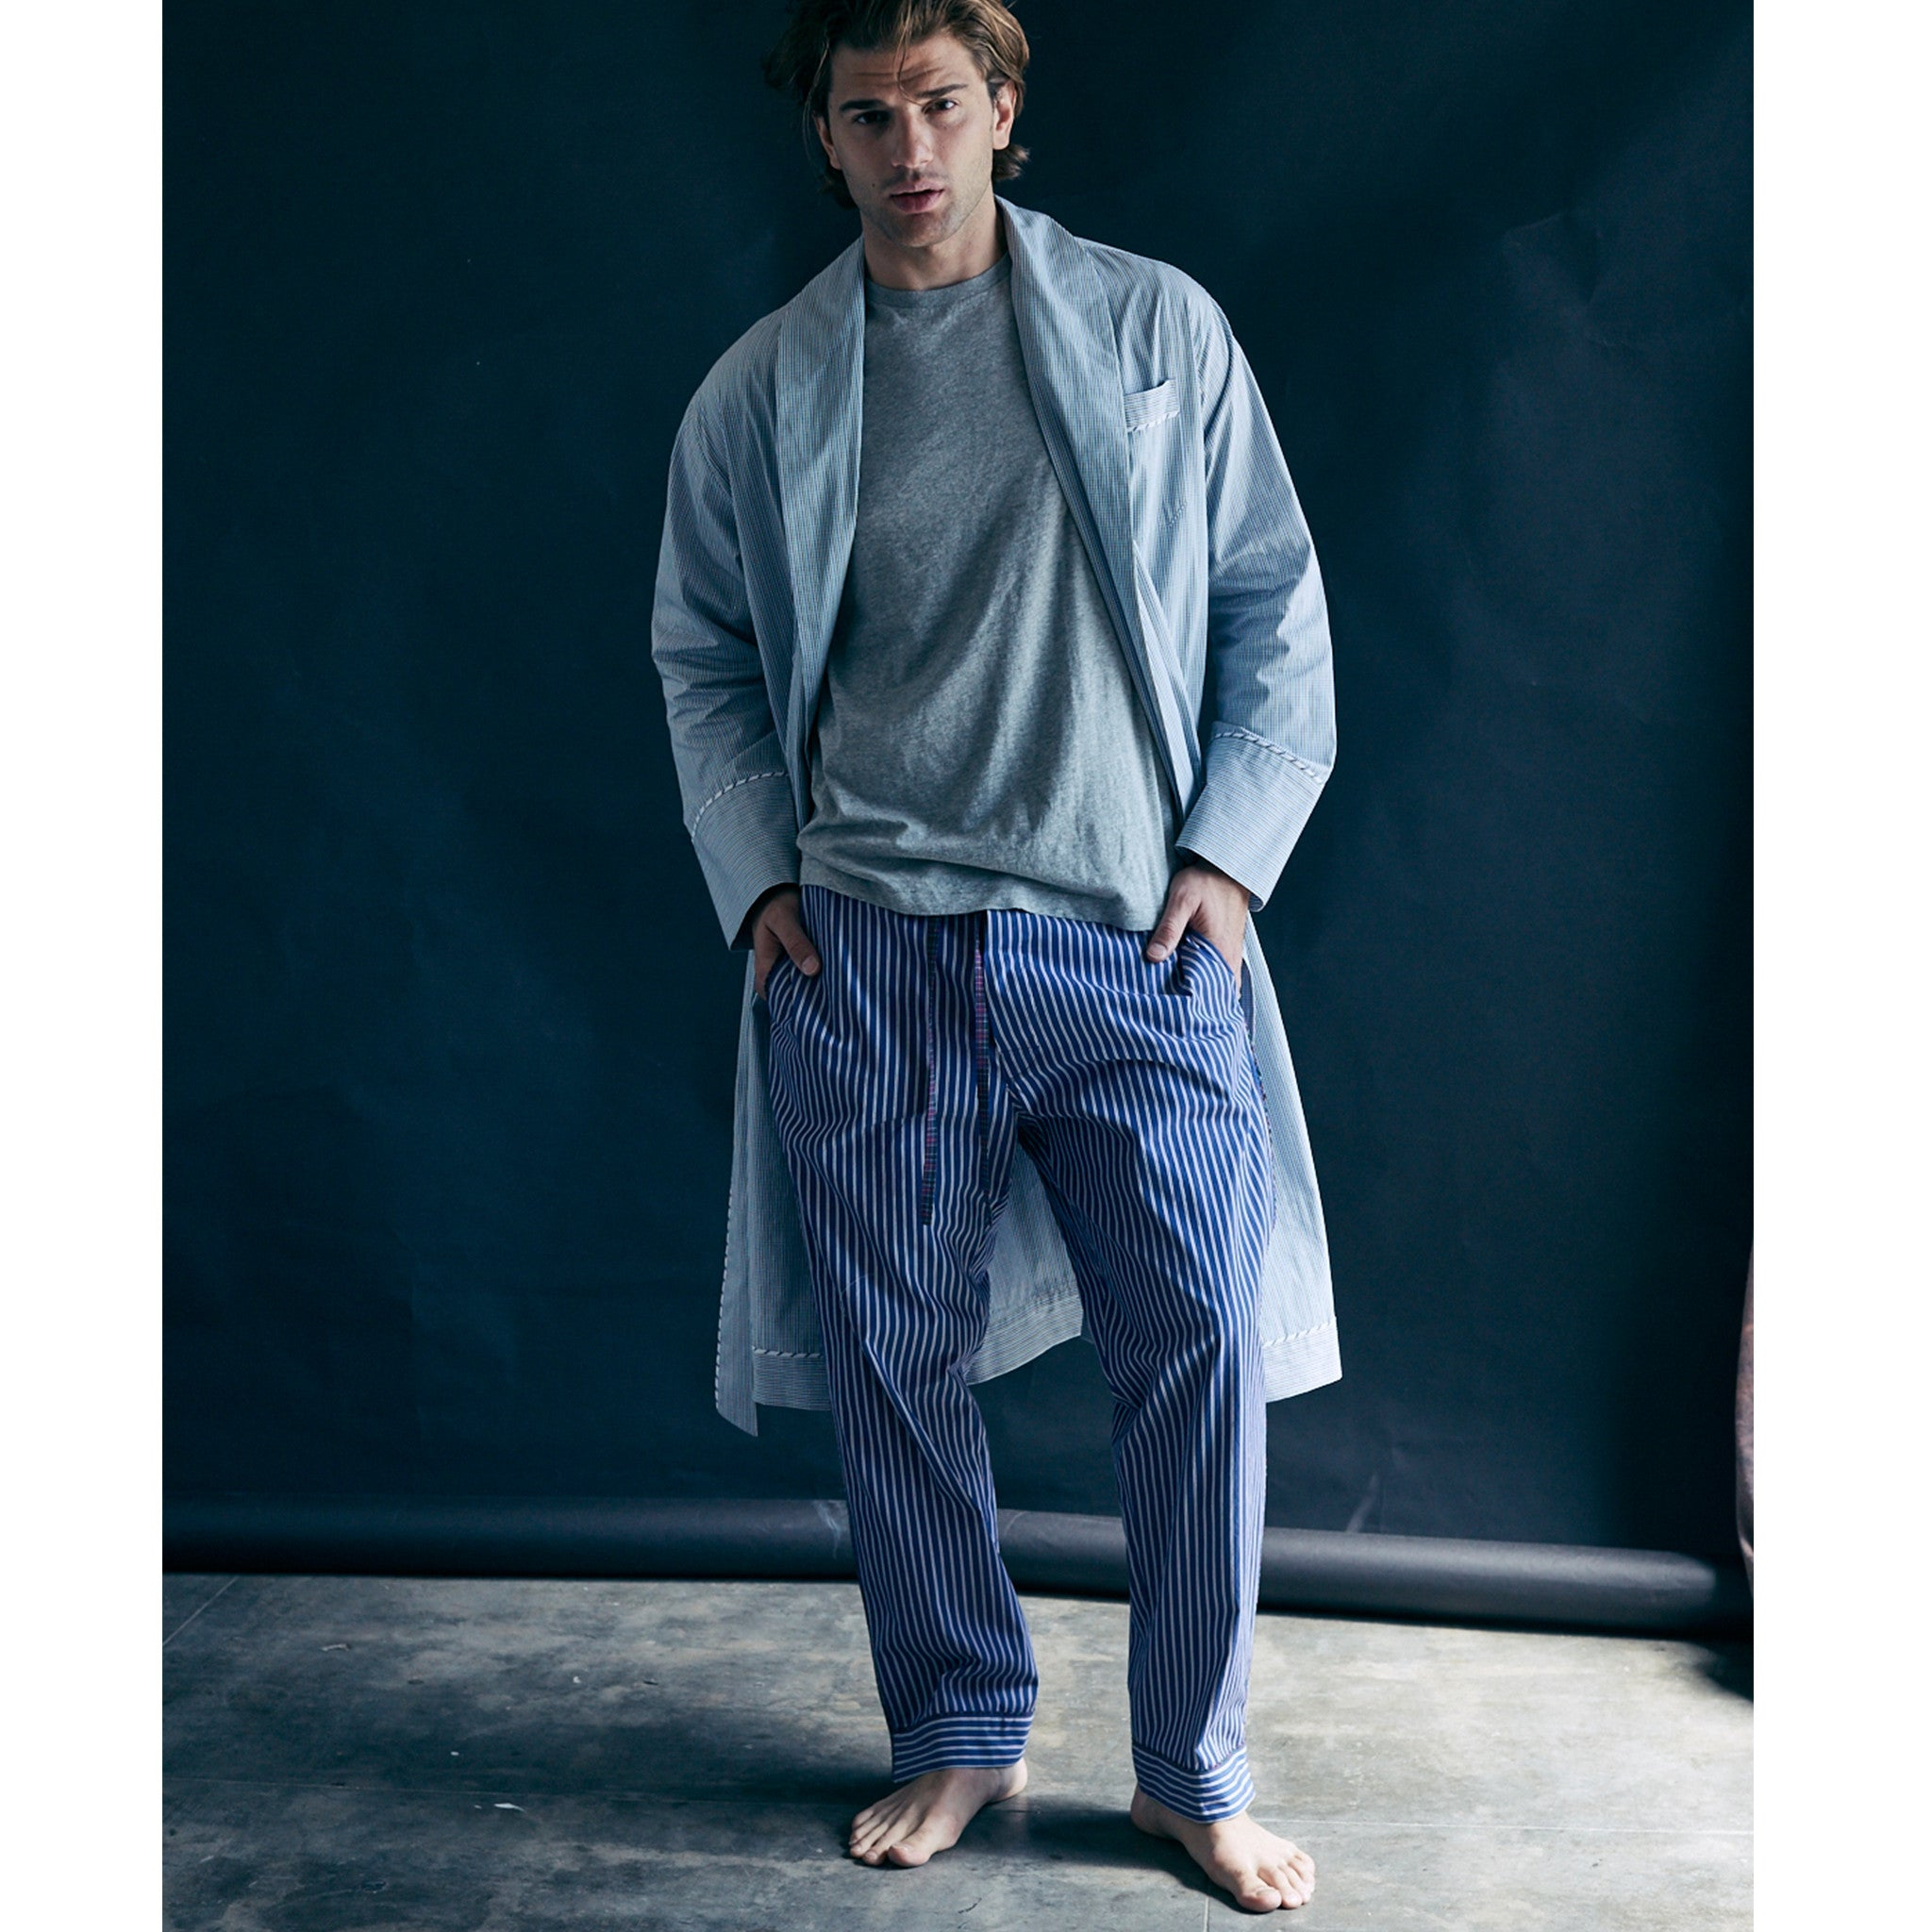 Saturn Pajama Pant in Blue and White Stripe Italian Cotton